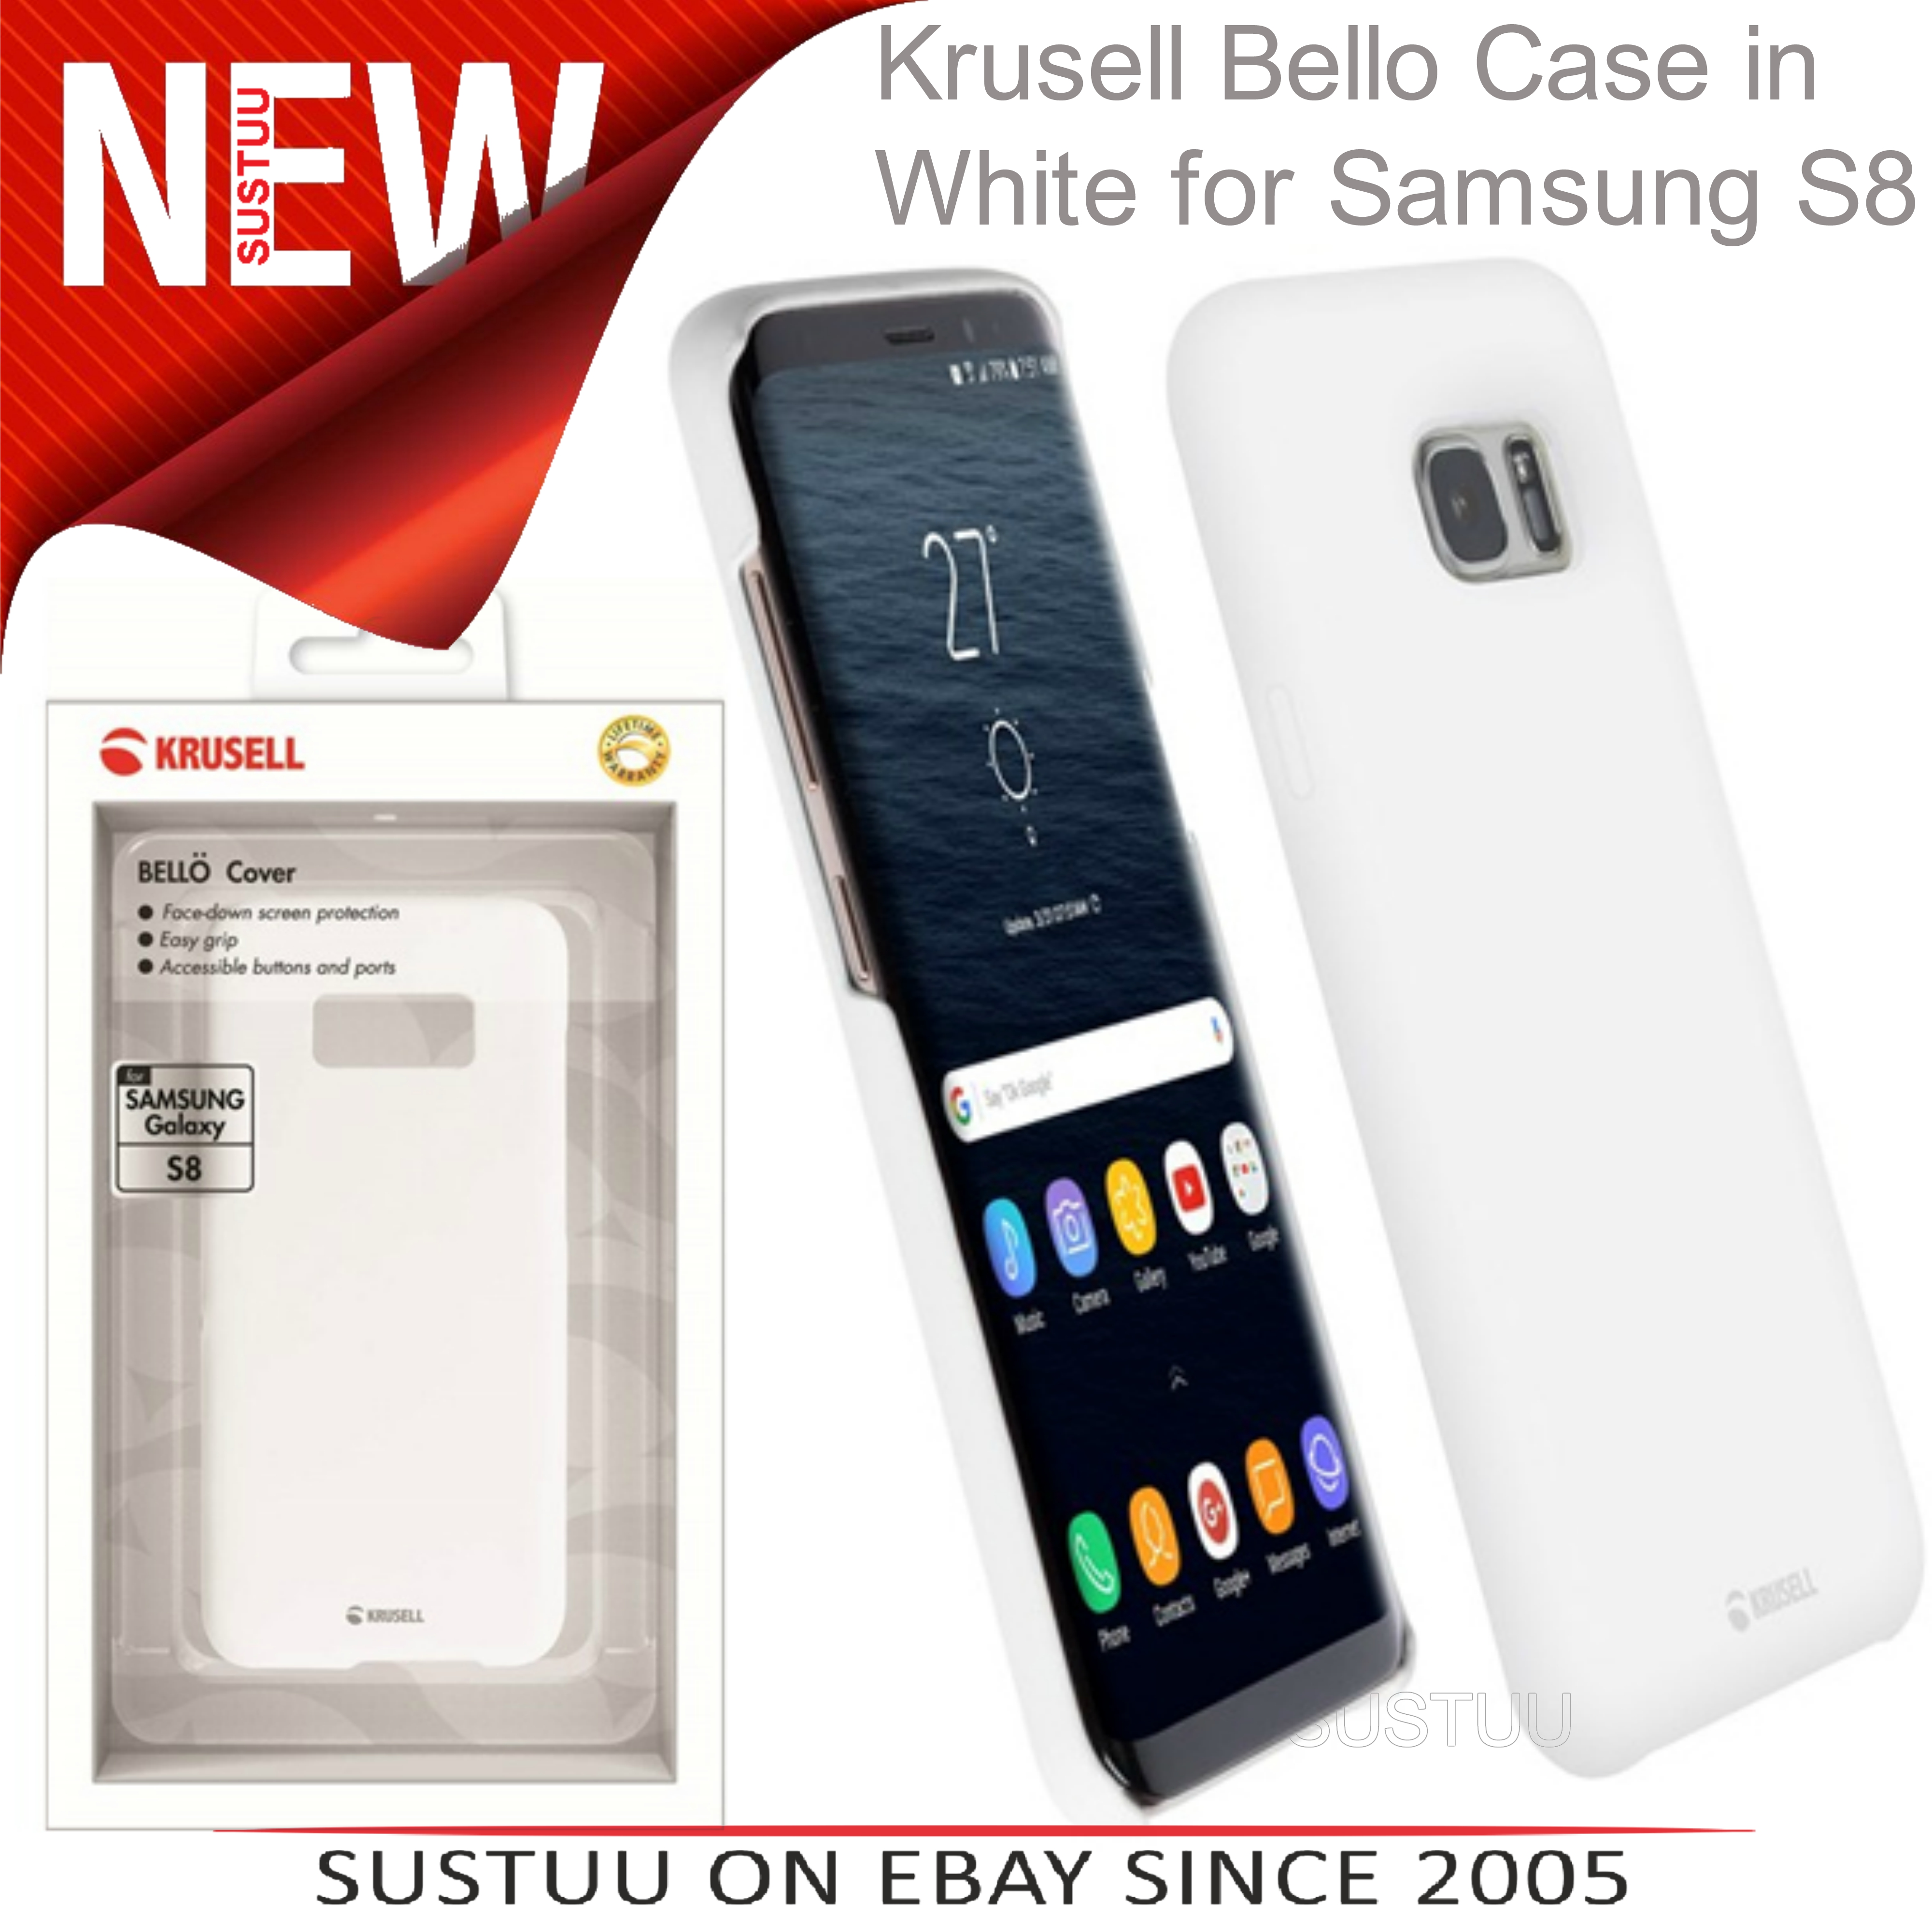 NEW Krusell Bellö Slim Soft Cover Case for Samsung S8 - White 1YEAR WARRANTY